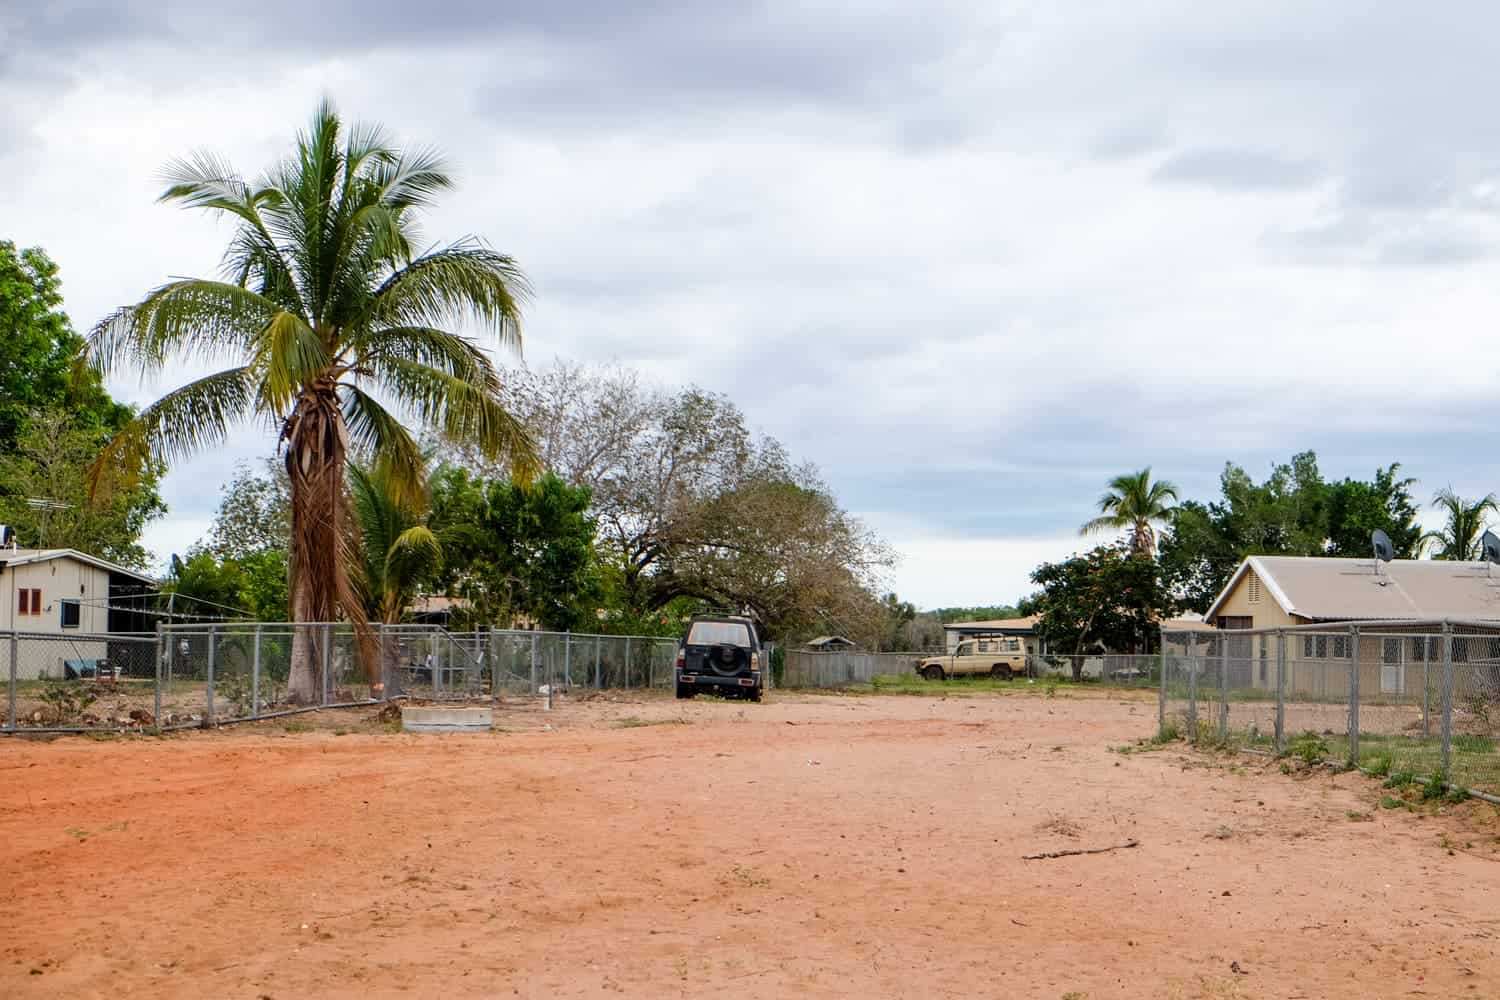 Beagle Bay, Aboriginal Communities in Kimberly Outback of Western Australia